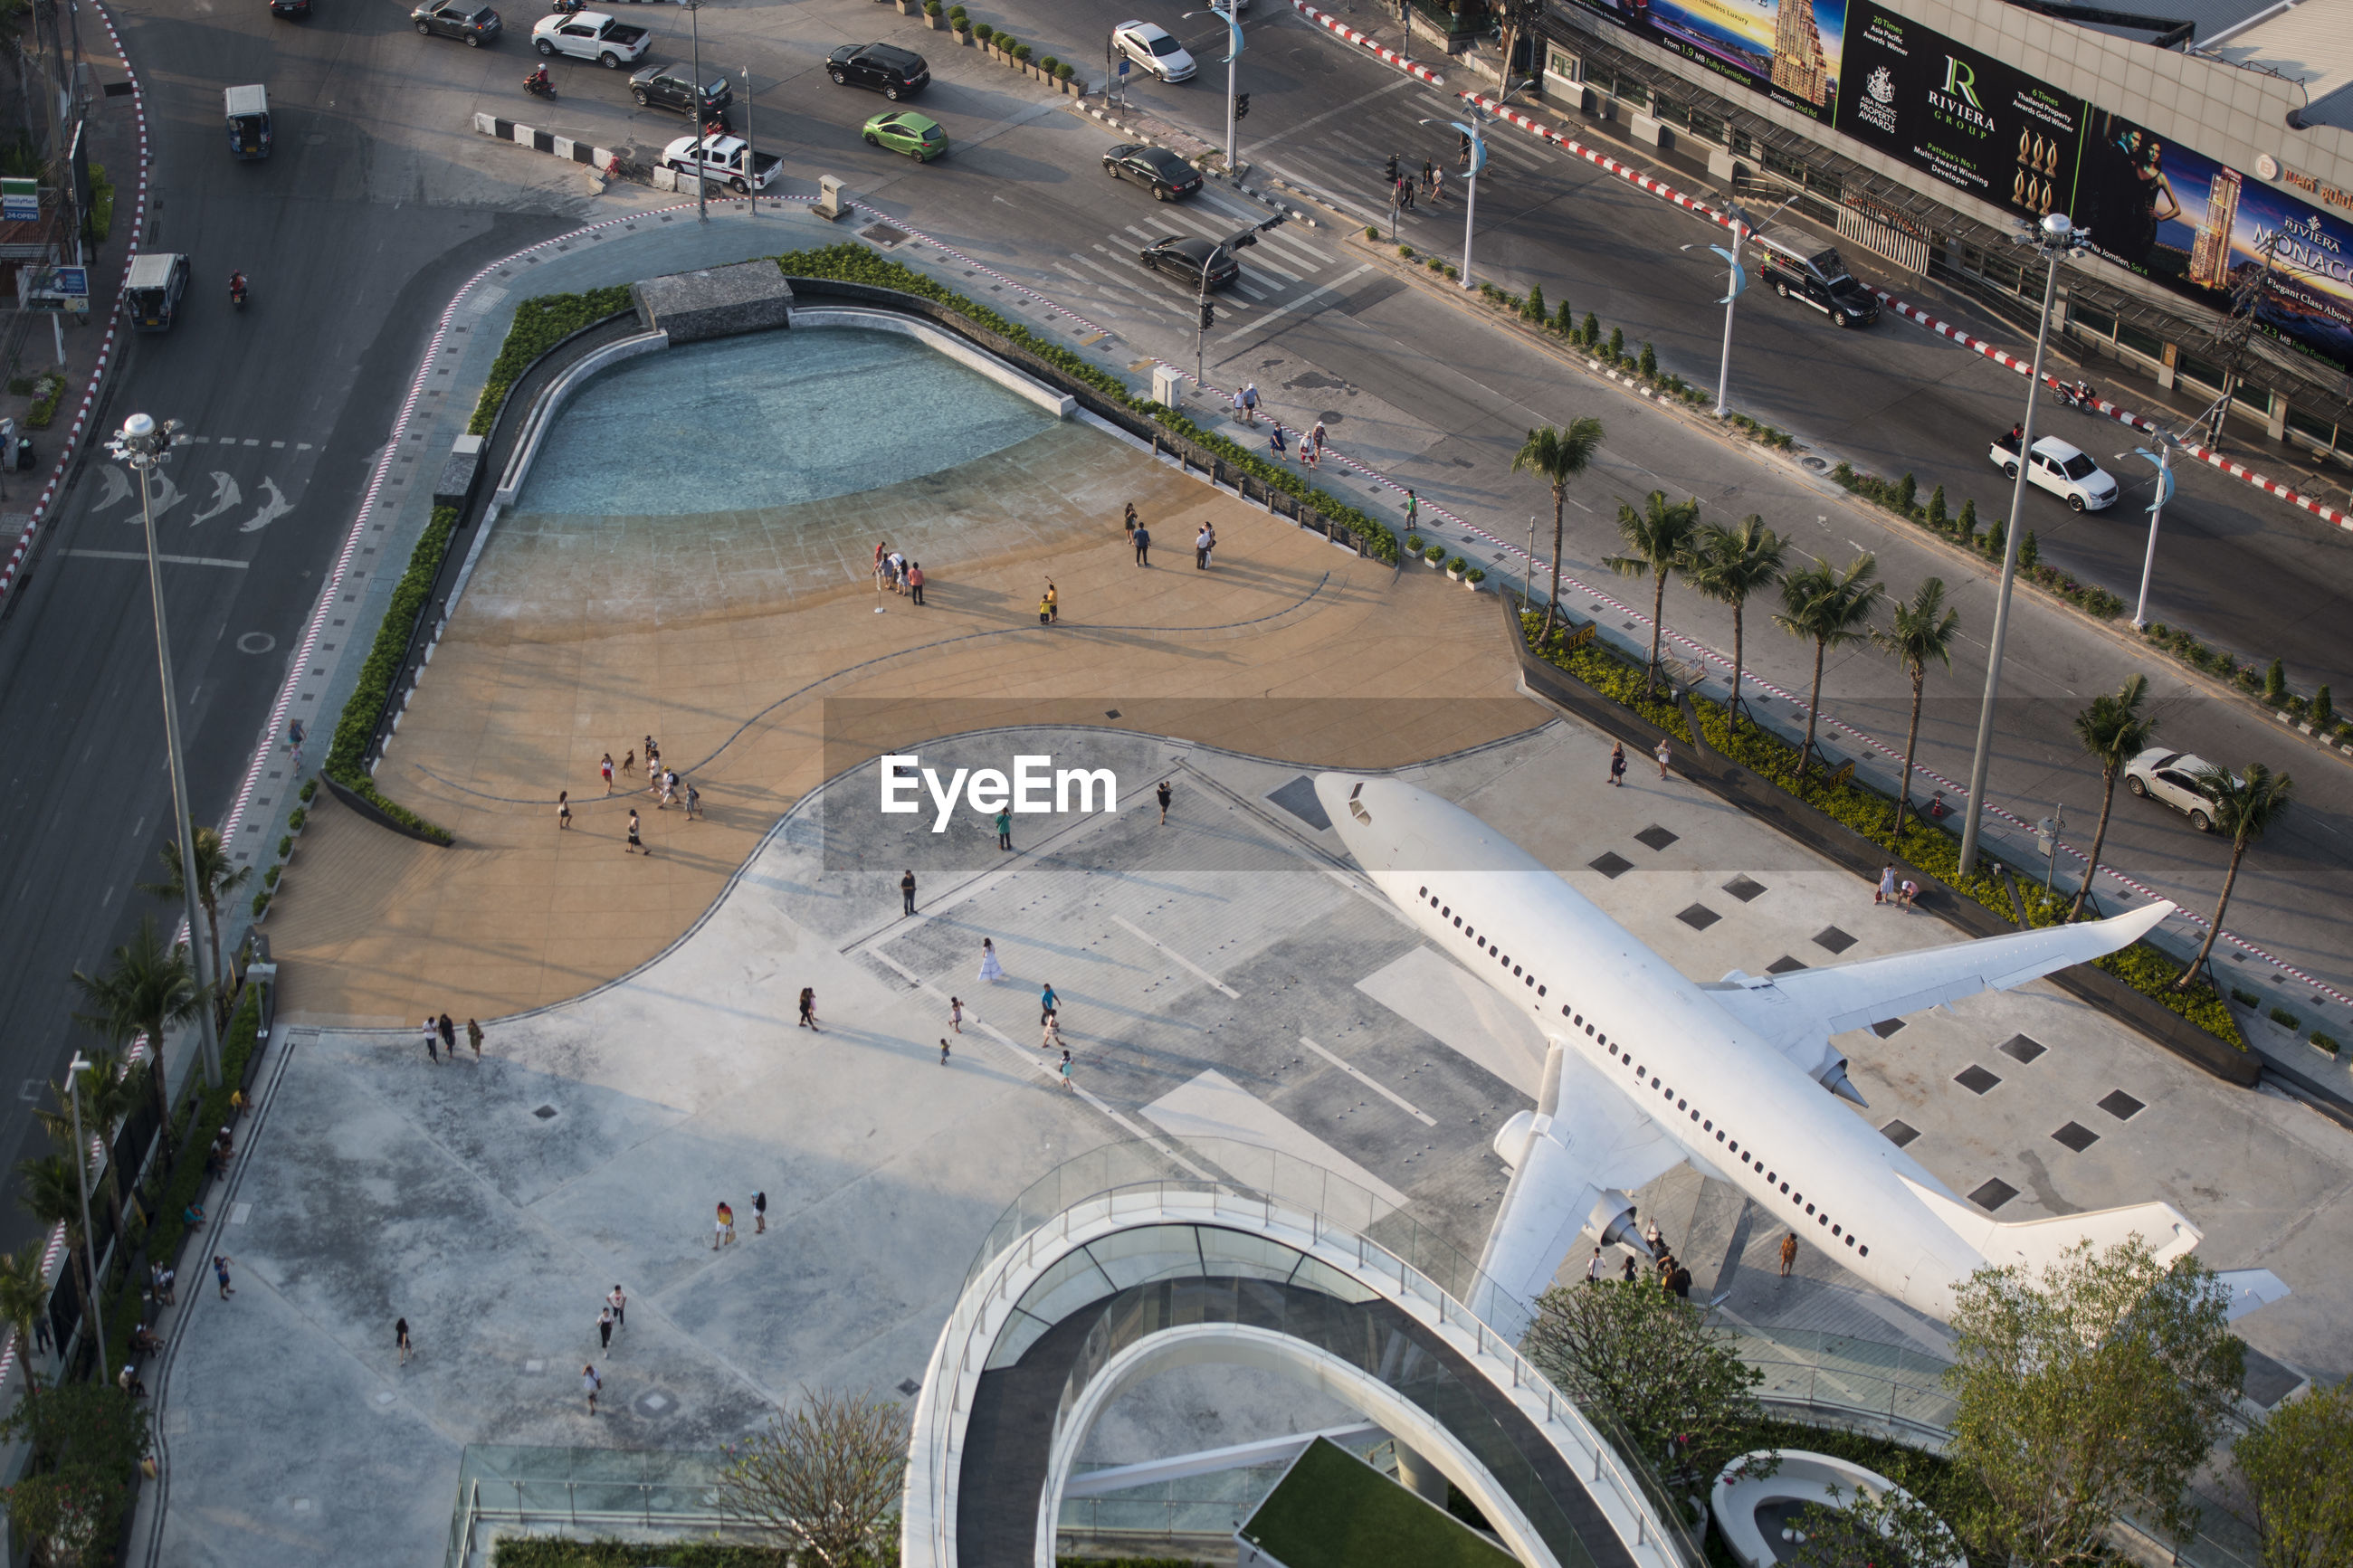 Aerial view of airplane sculpture in city